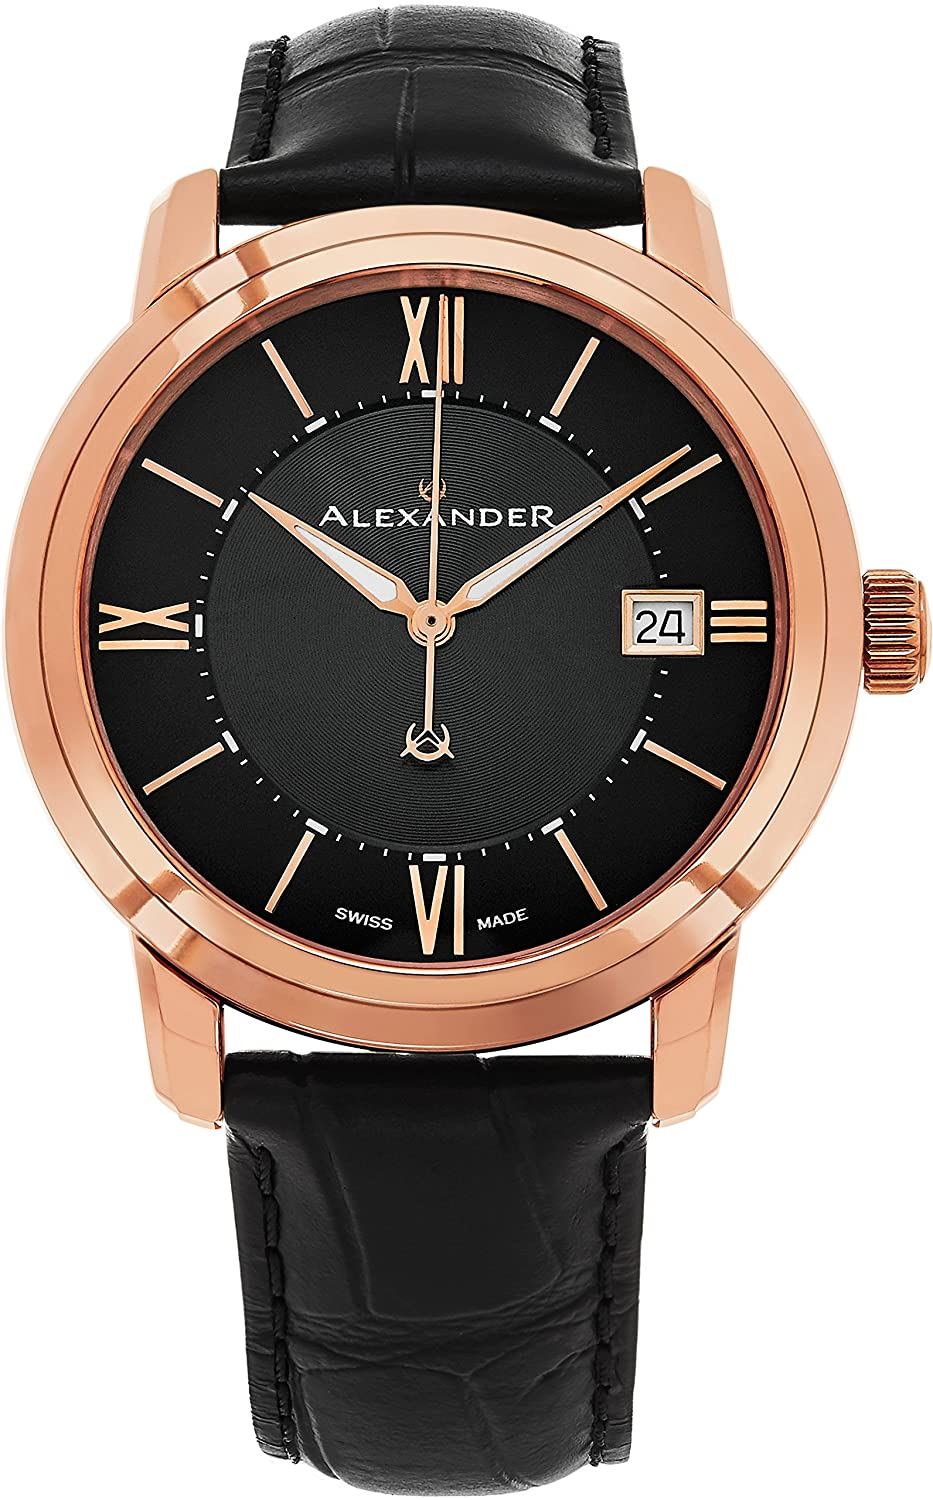 d04a2de9e8 Alexander Heroic Macedon Mens Rose Gold Watch Leather Band - 40mm Analog  Black Face with Second Hand Date and Sapphire Crystal - Classic Swiss Made  Quartz ...